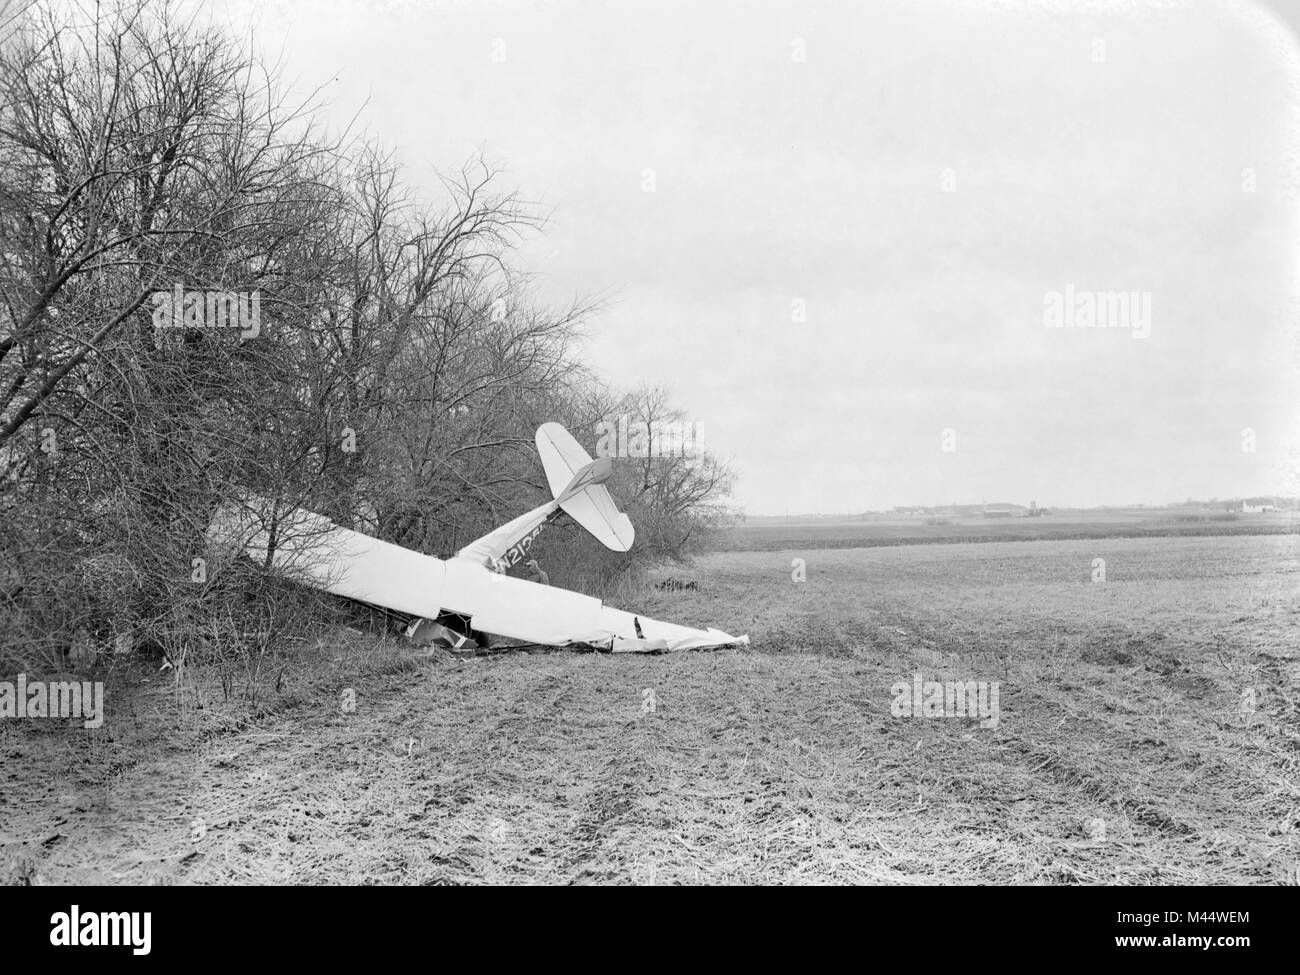 A single engine airplane is nestled up against a tree line after a crash in an Illinois farm field, ca. - Stock Image